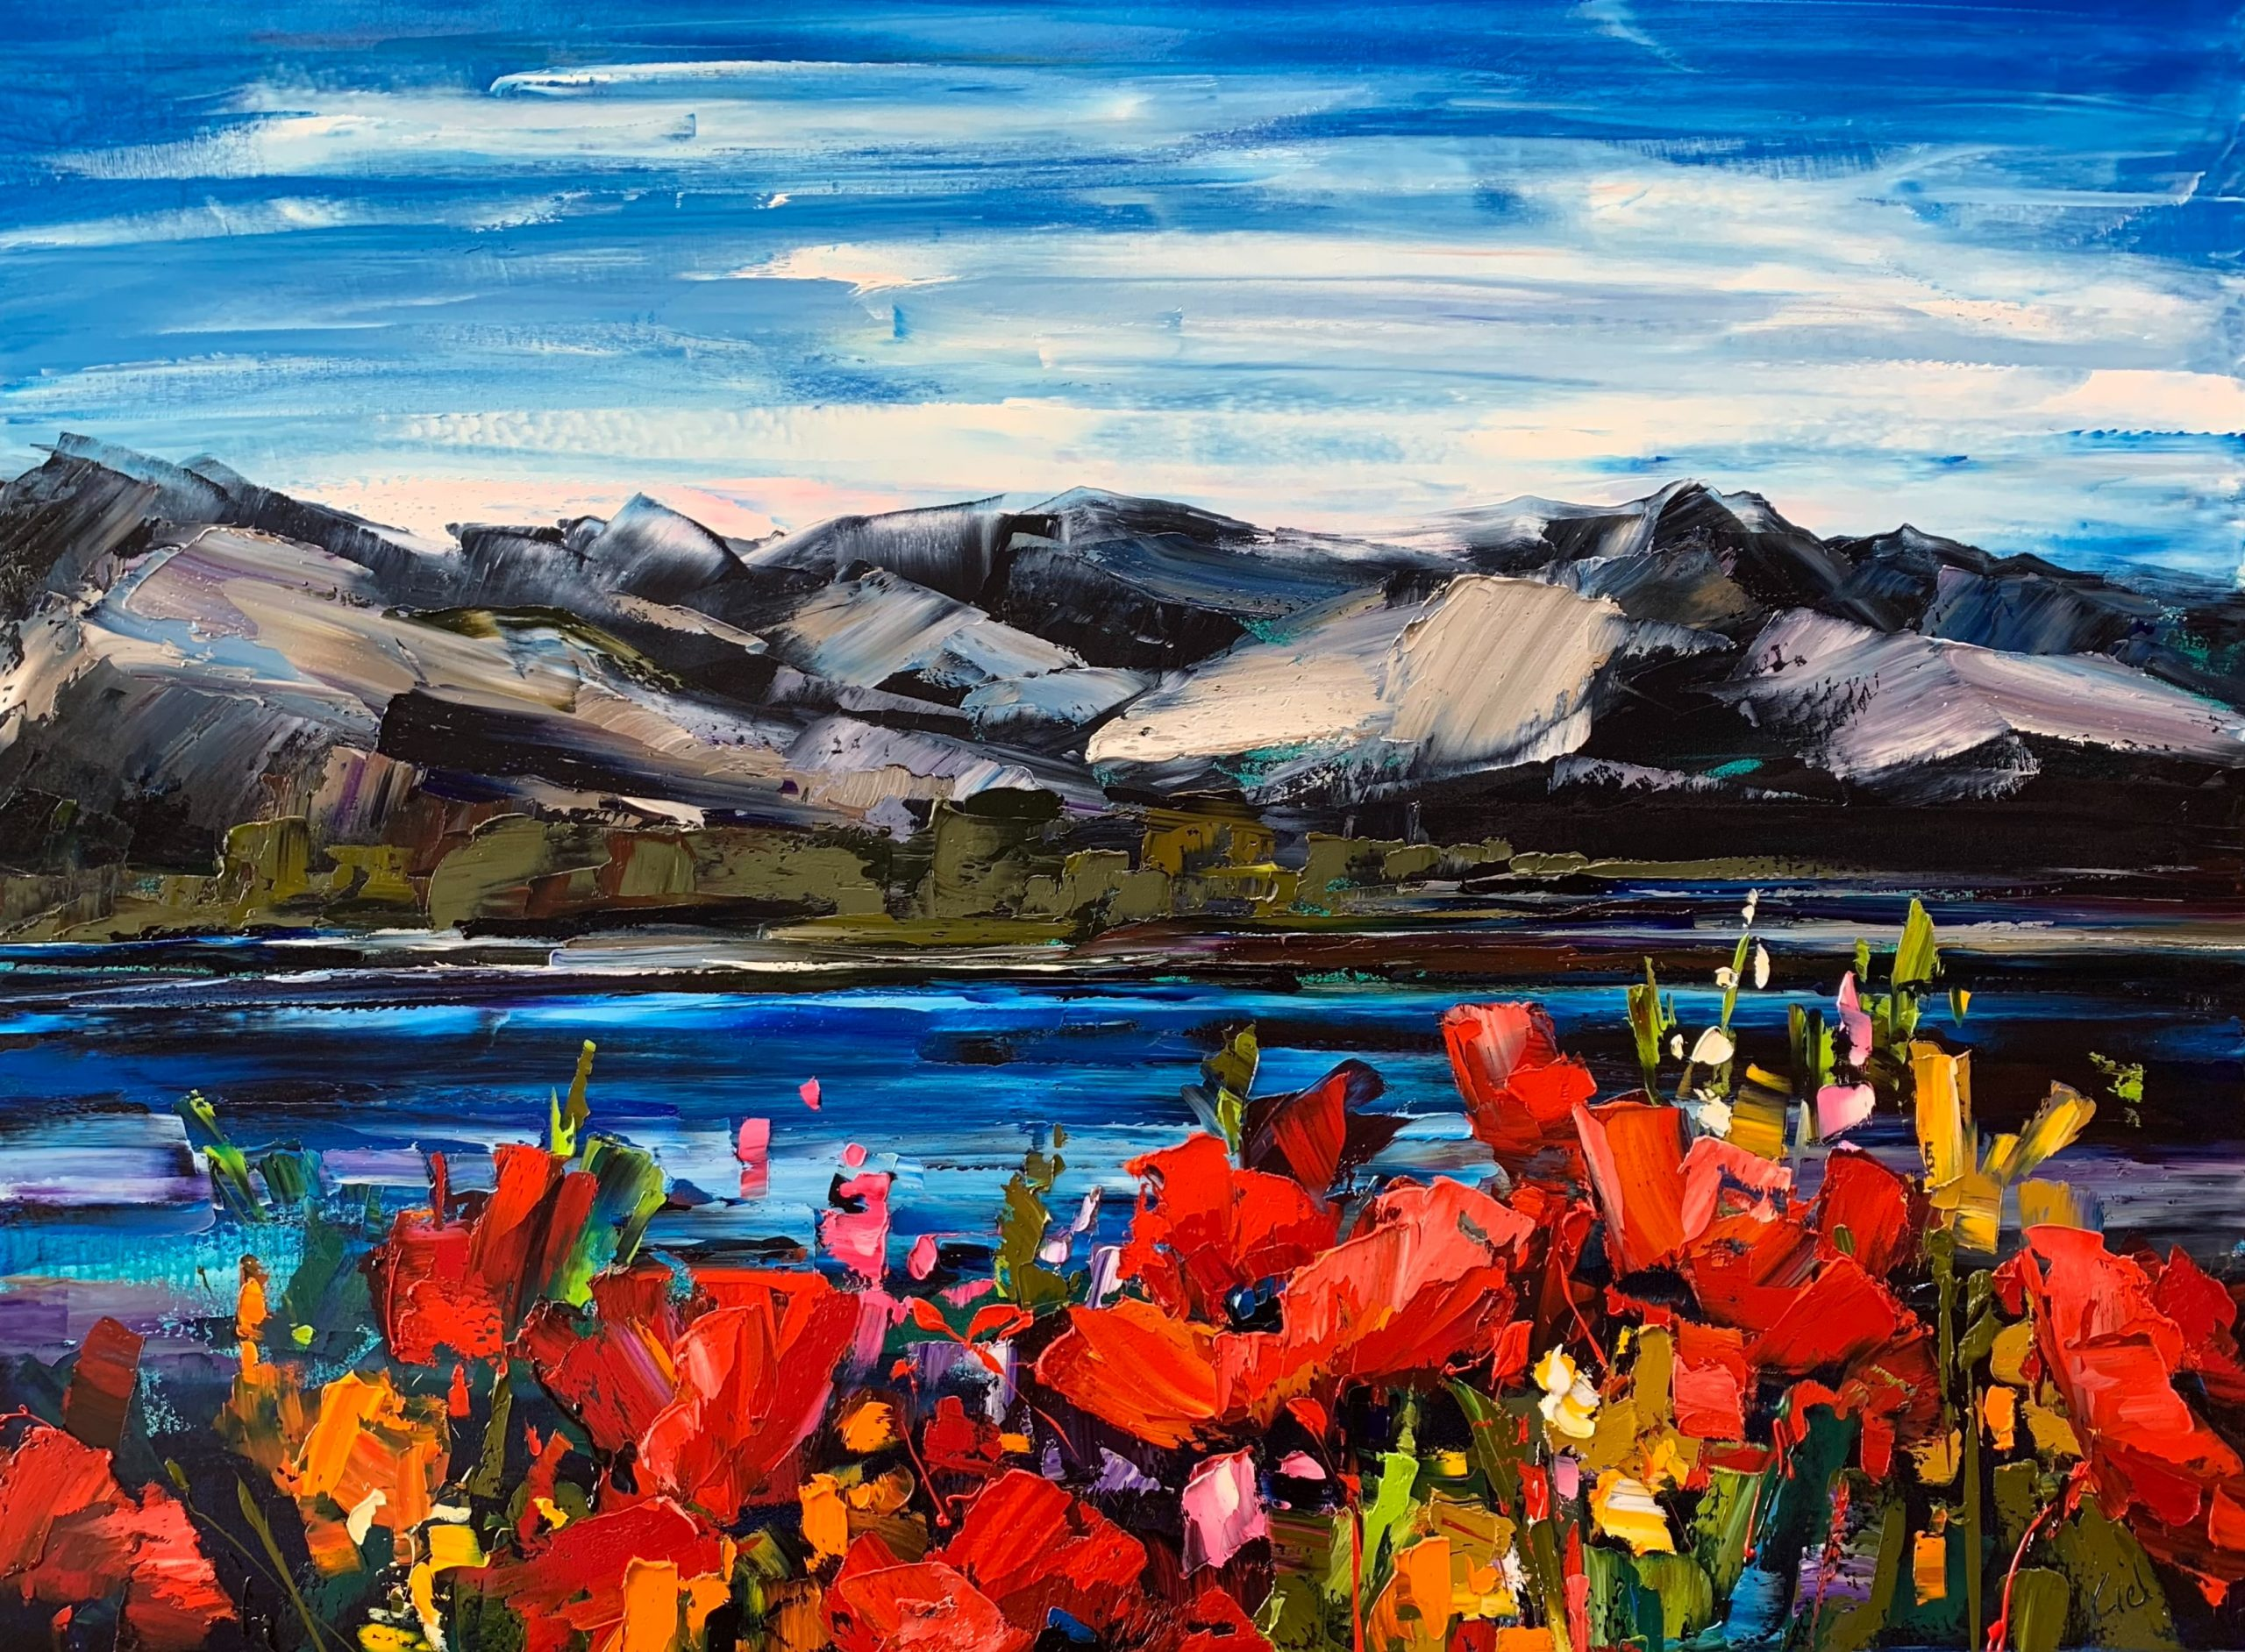 Serendipity, oil landscape painting by Kimberly Kiel | Effusion Art Gallery + Cast Glass Studio, Invermere BC